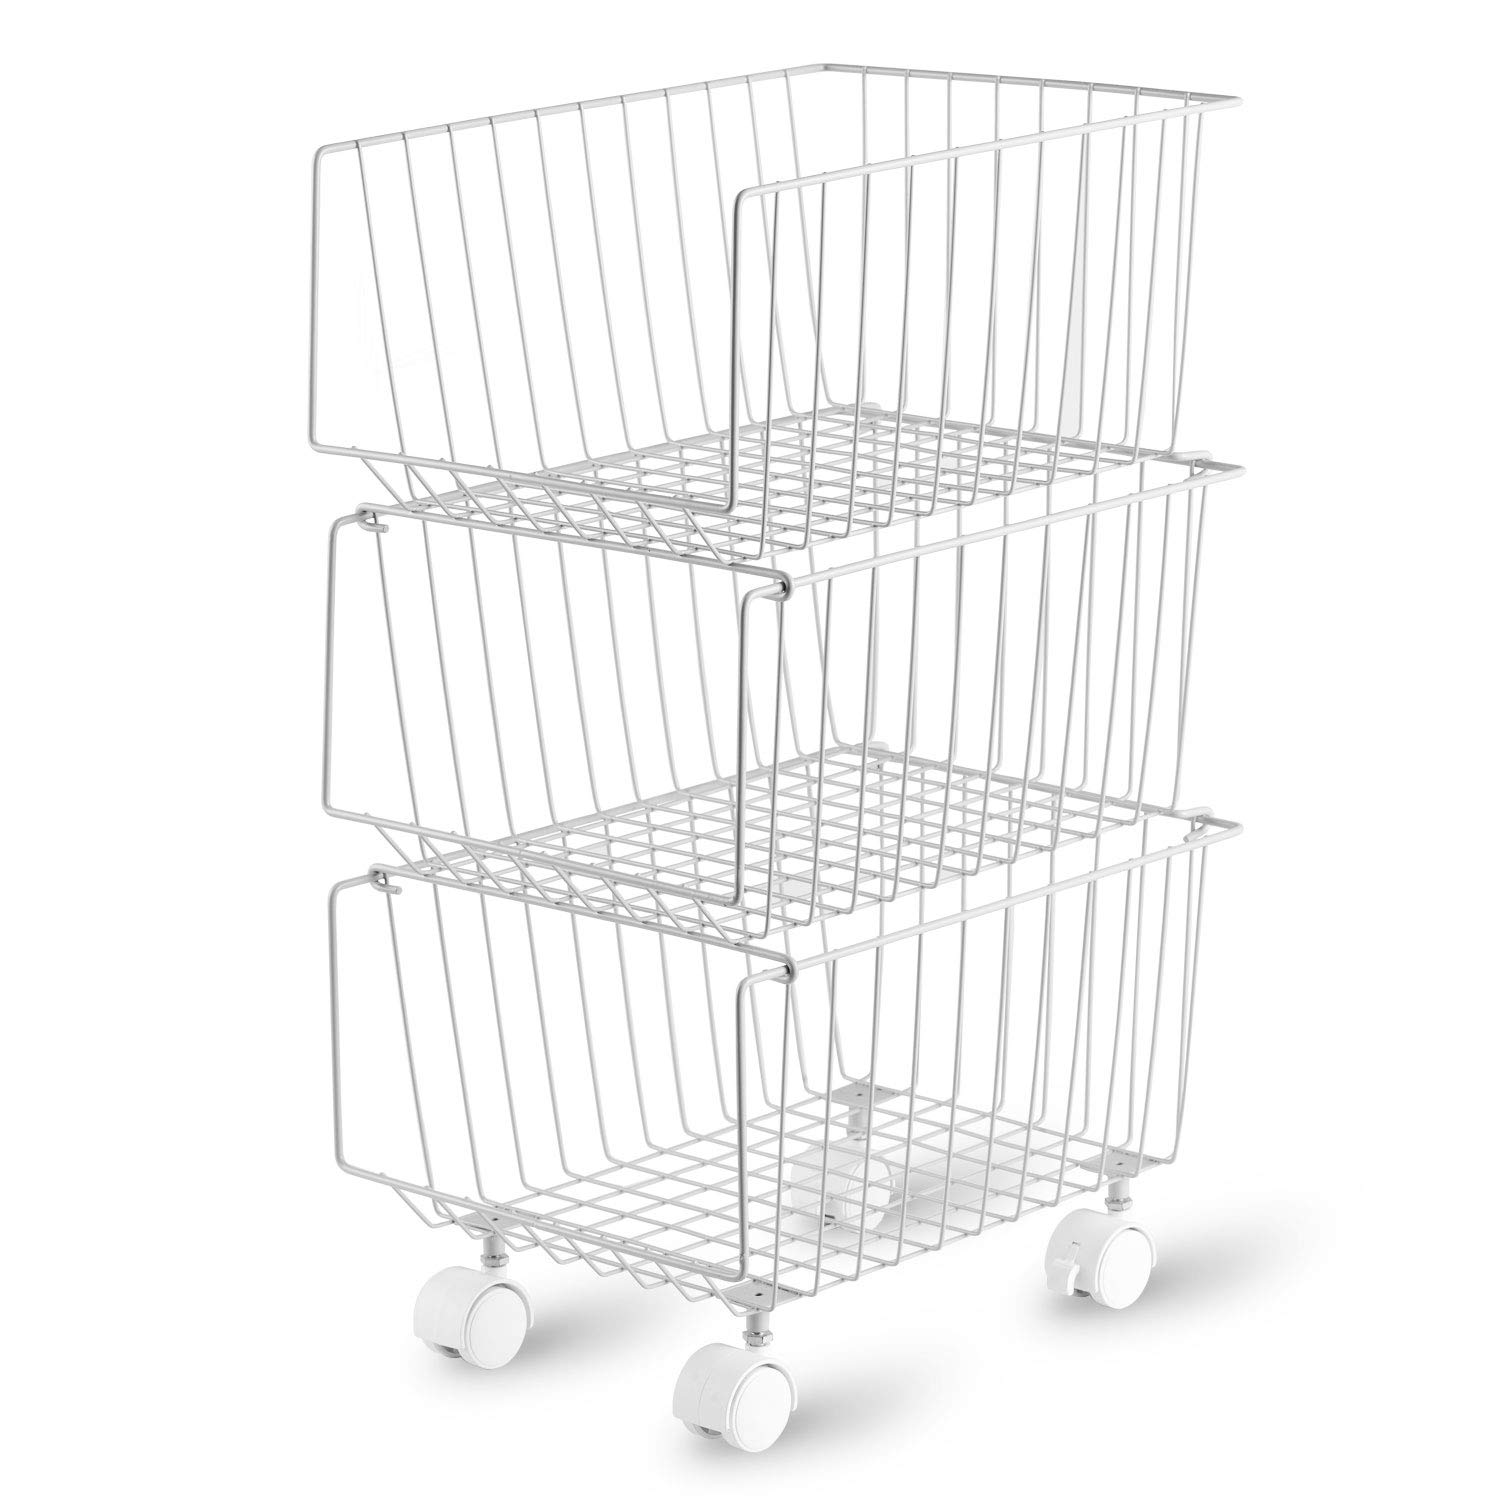 Rolling Stackable Storage Bin, Modern 3 Tiers Basket with Pre-Installed Casters, Utility Storage Organizer for Pantry, Closets, Bedrooms(Gray)